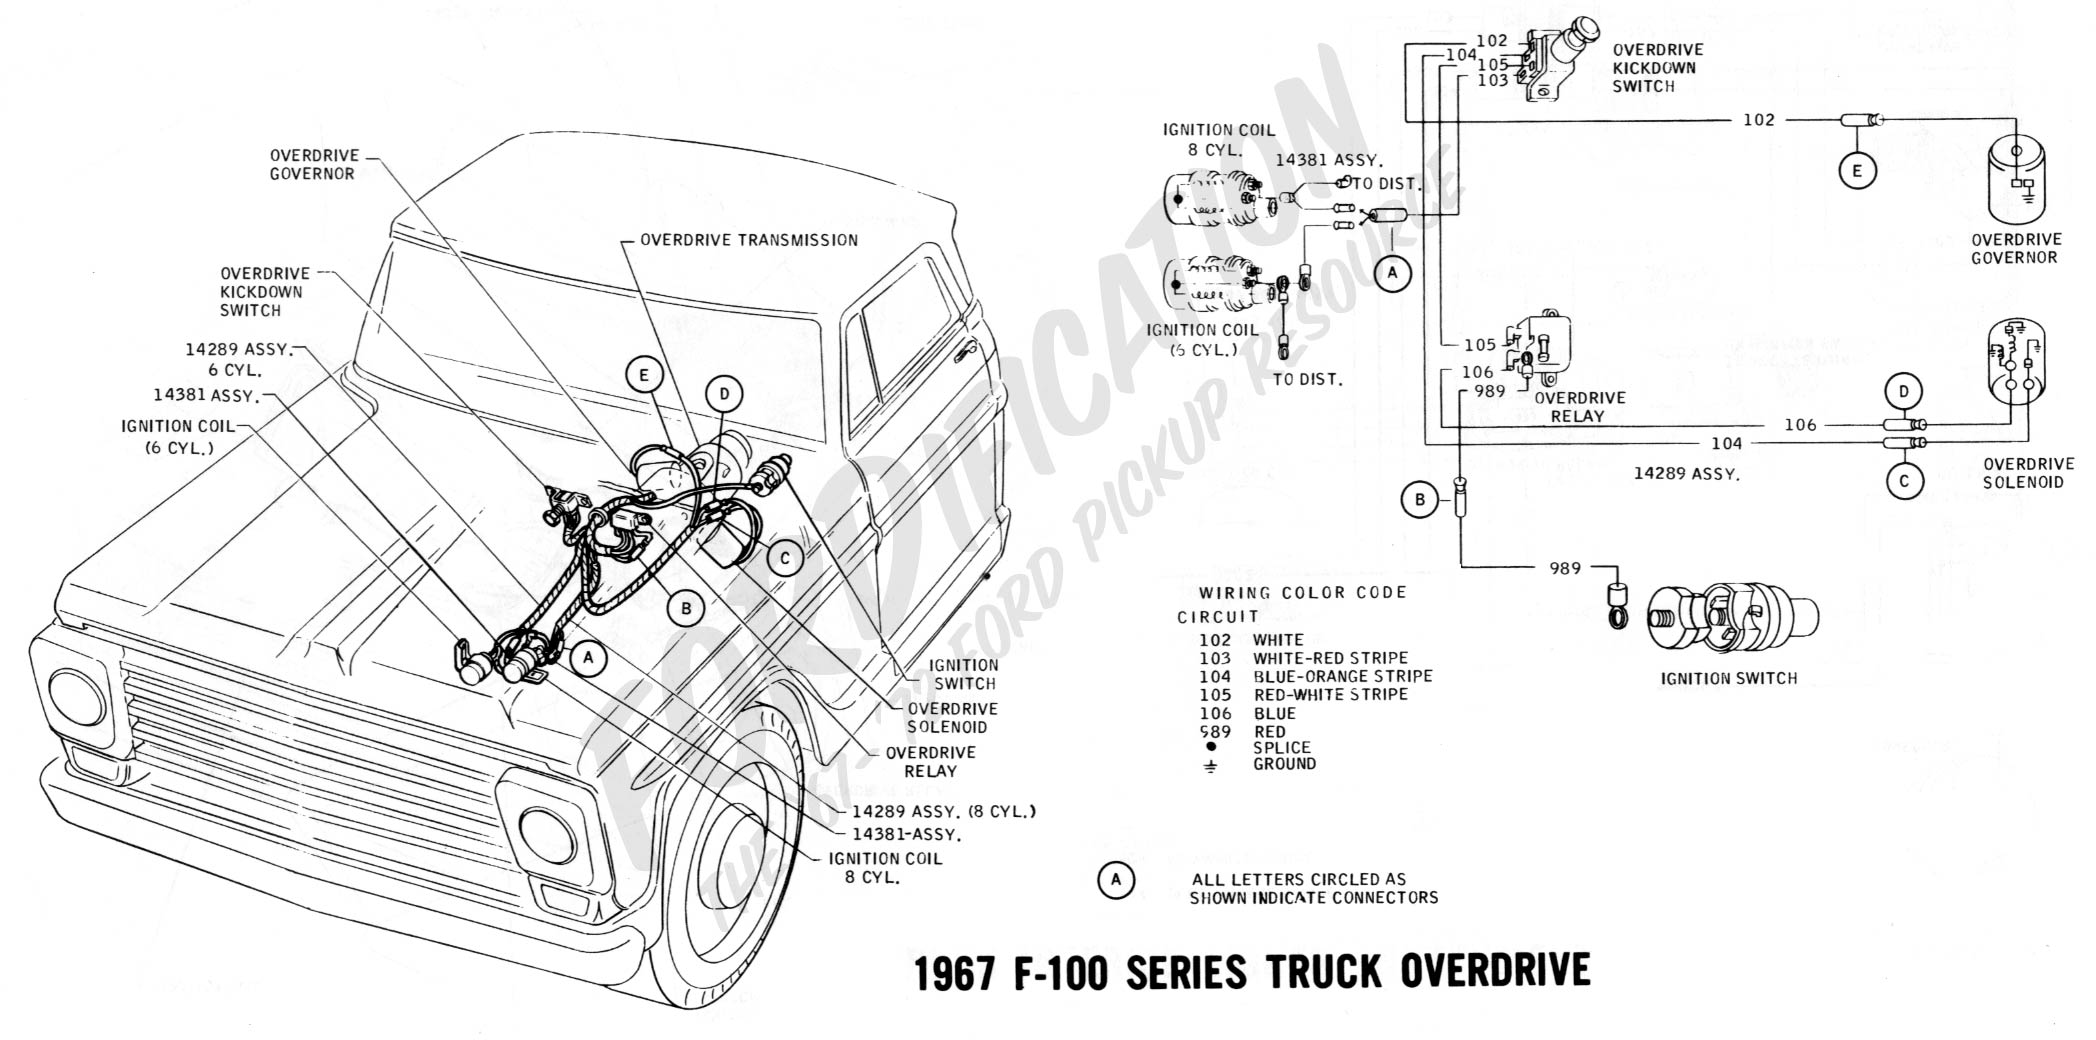 wiring 1967overdrive2 ford truck technical drawings and schematics section h wiring Ford F-250 Wiring Diagram at mifinder.co